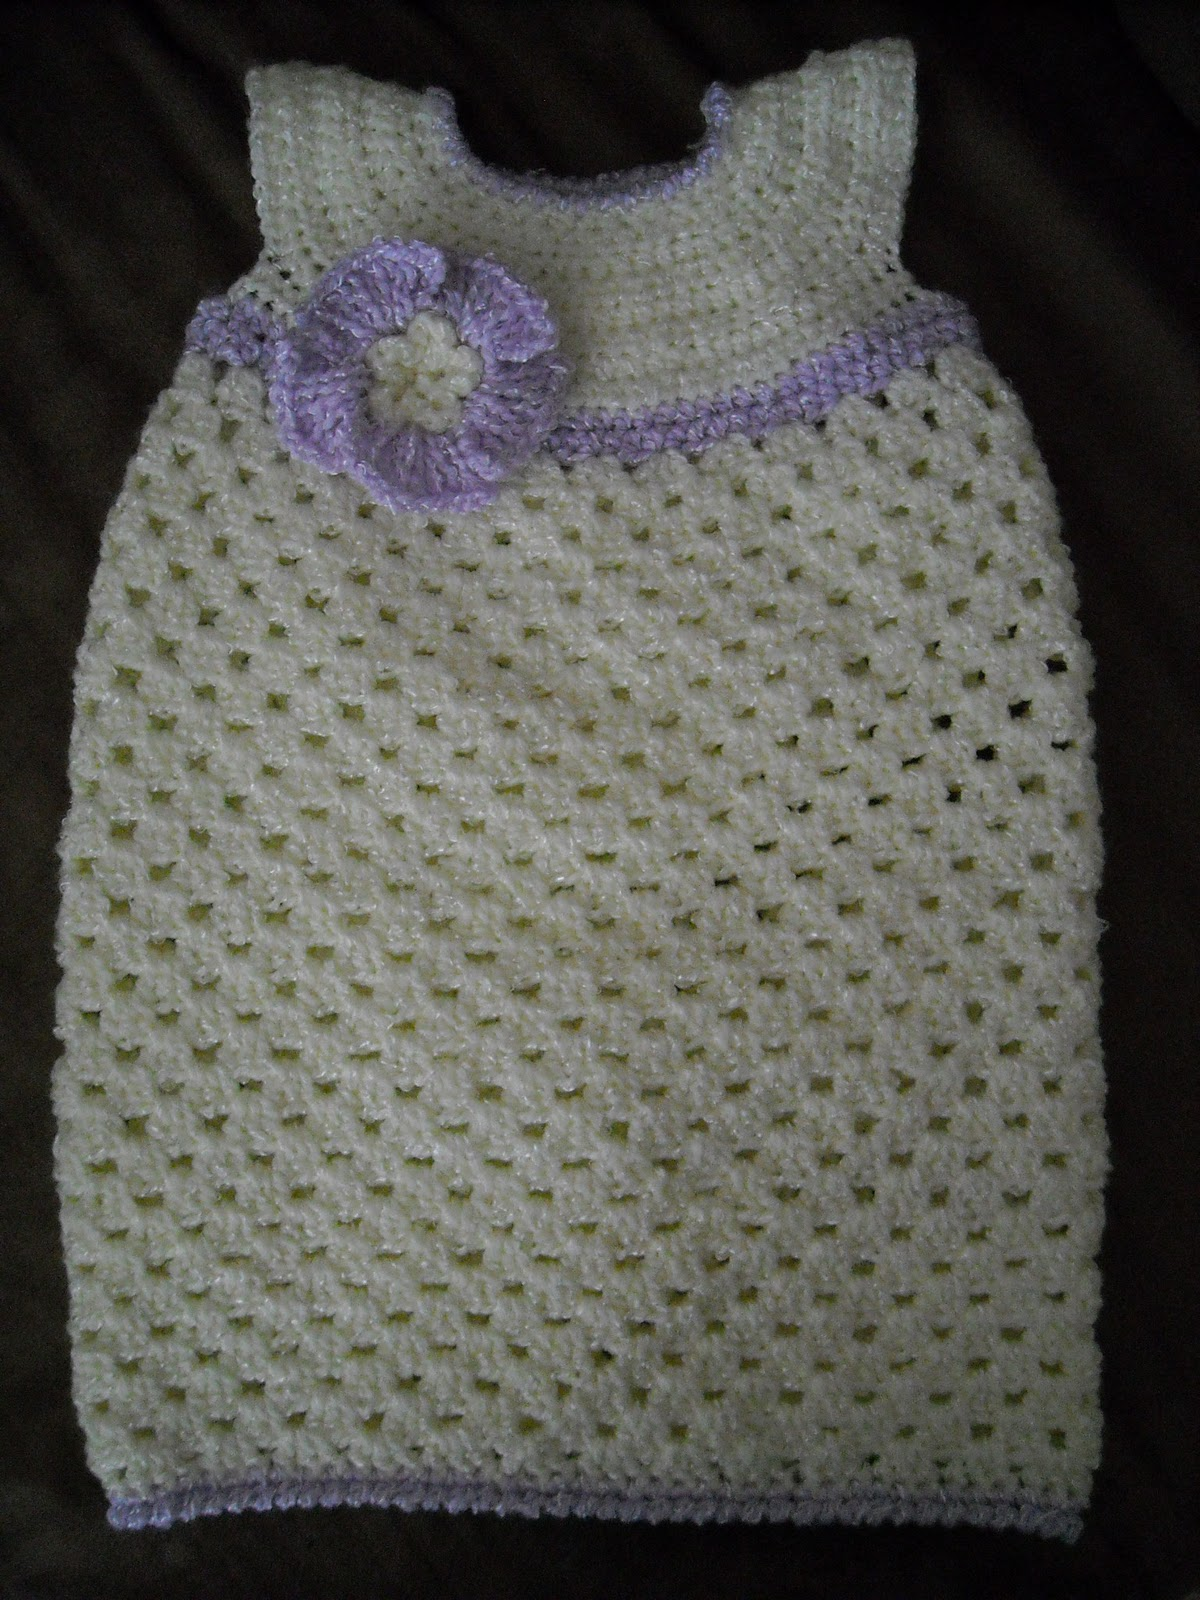 A Crafty Cook: Crocheted Baby Gifts